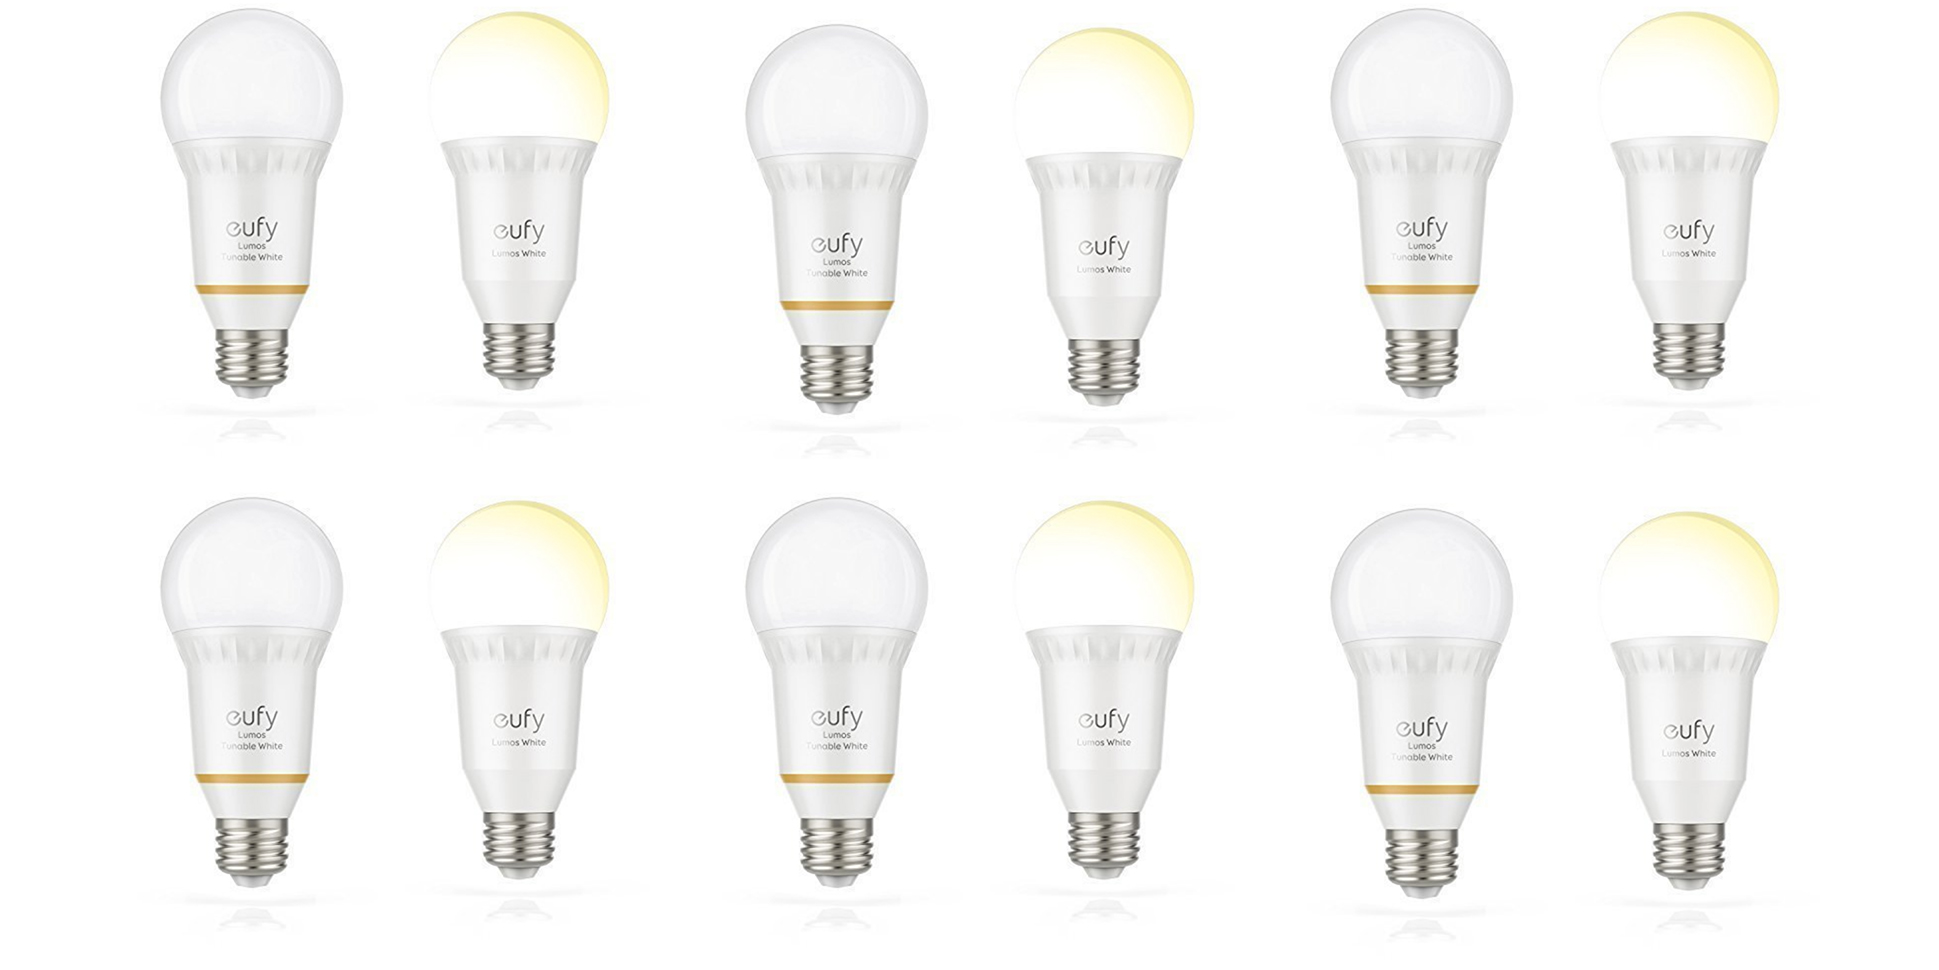 anker u0026 39 s new smart led light bulbs on sale from  17 prime shipped  no hub required